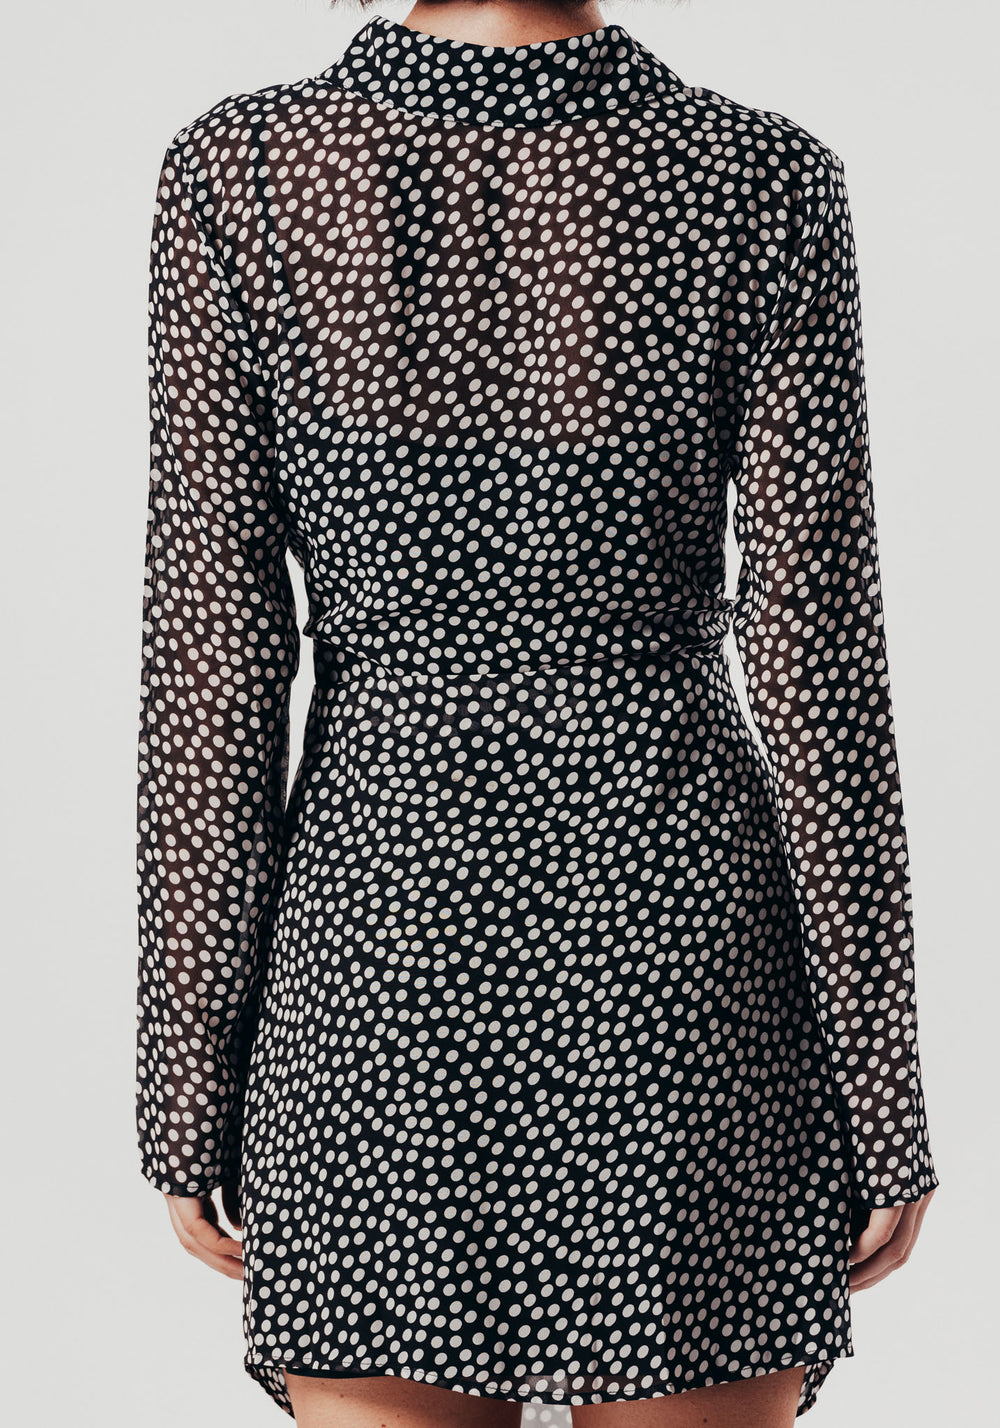 Polka Dot Sheer Shirt Dress With Front Tie